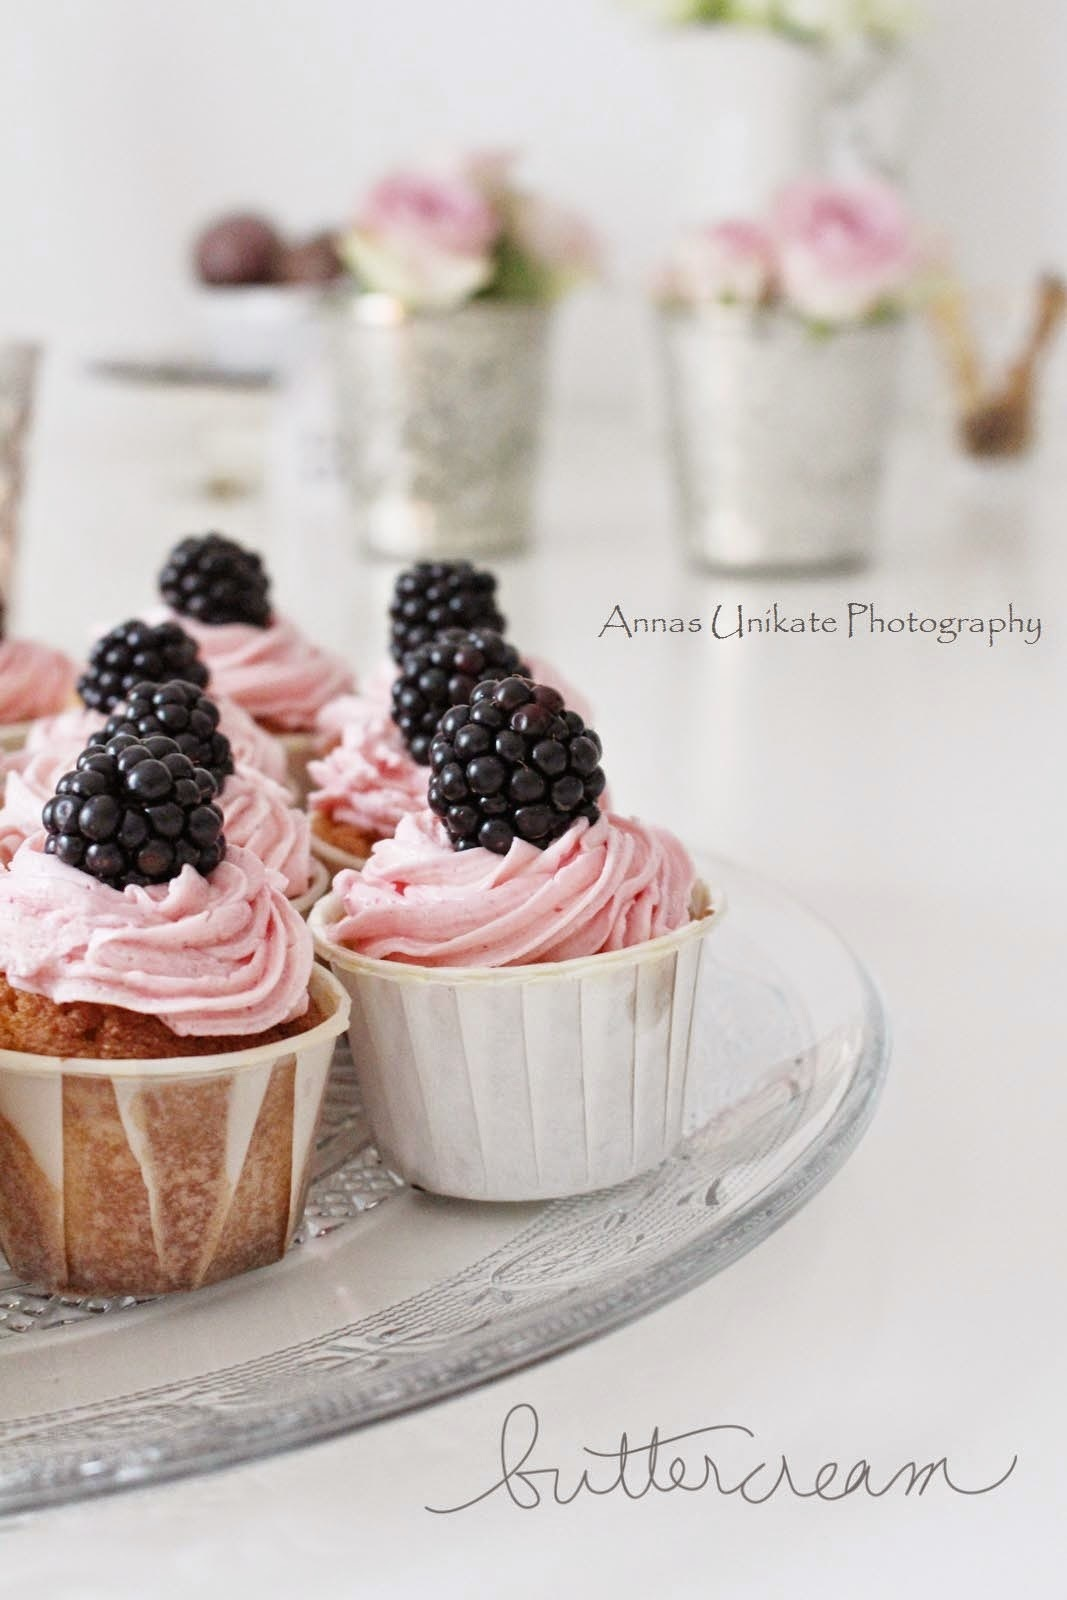 Cupcakes im rosa Buttercreme-Outfit